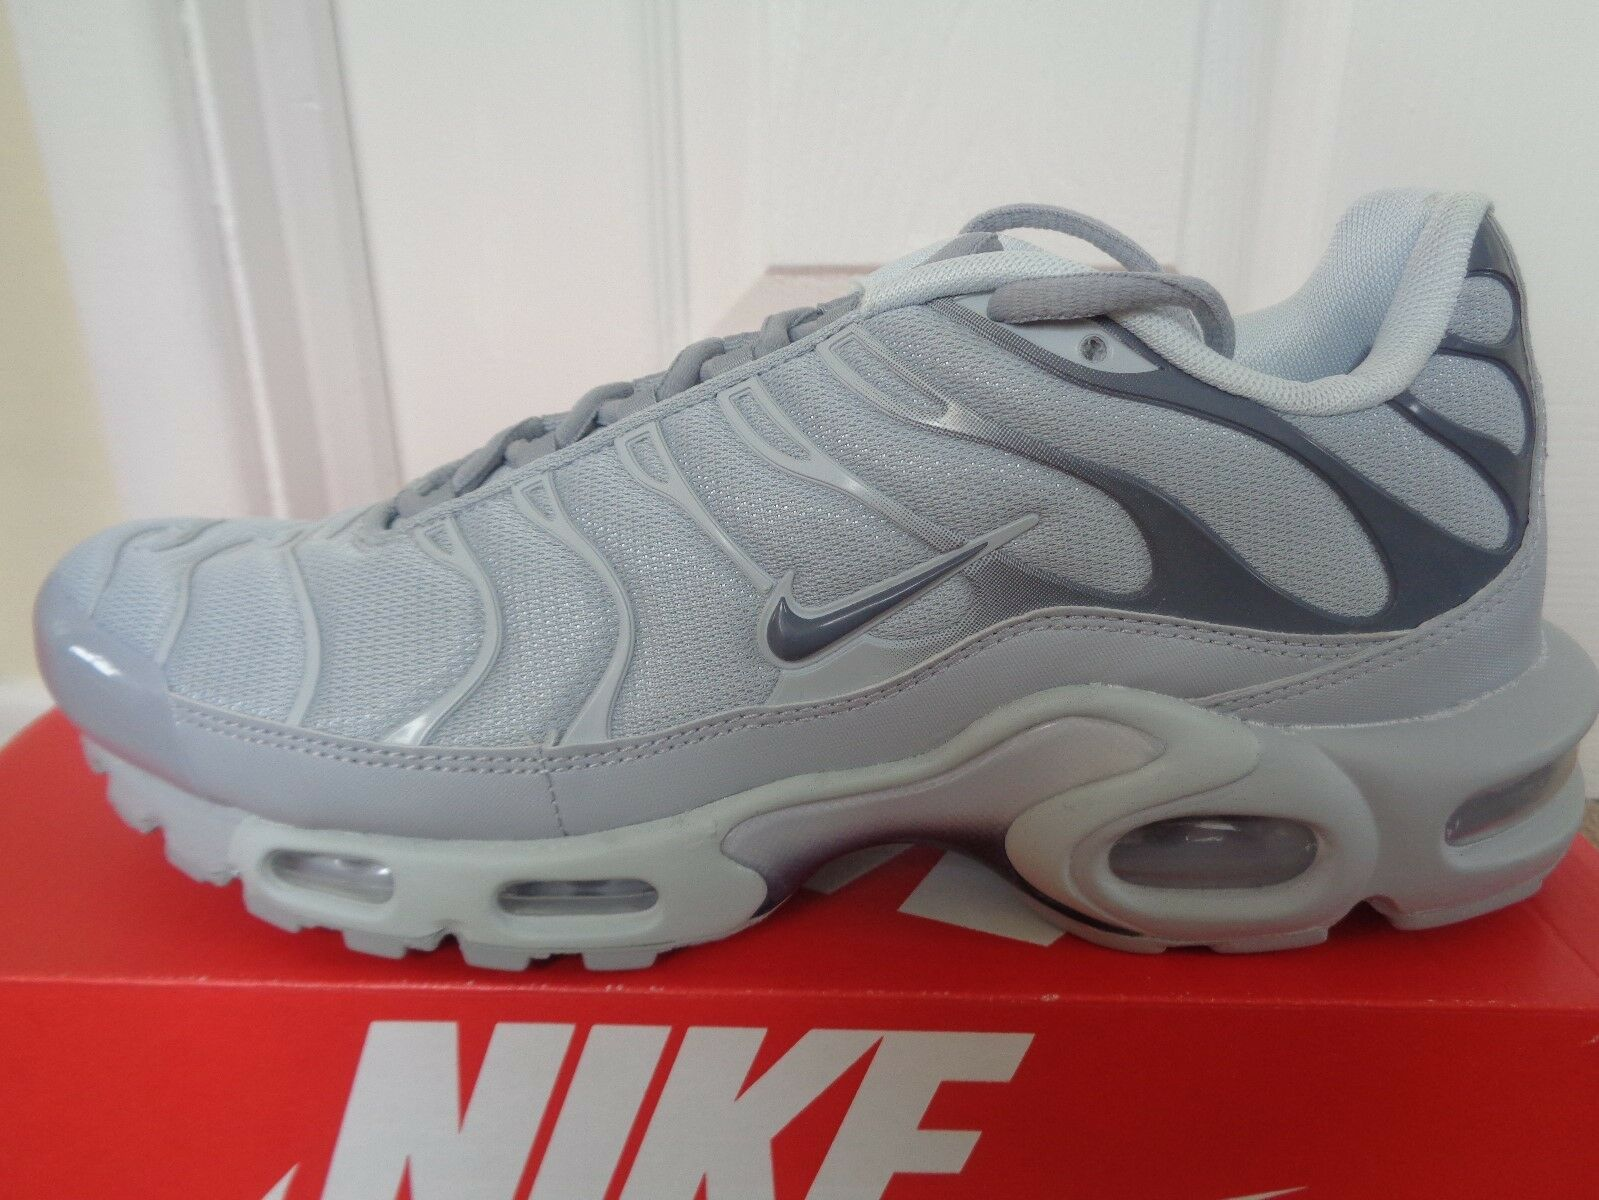 Nike Air max plus trainers sneakers chaussures 852630 006 uk 7.5 eu 42 us 8.5 NEW+BOX